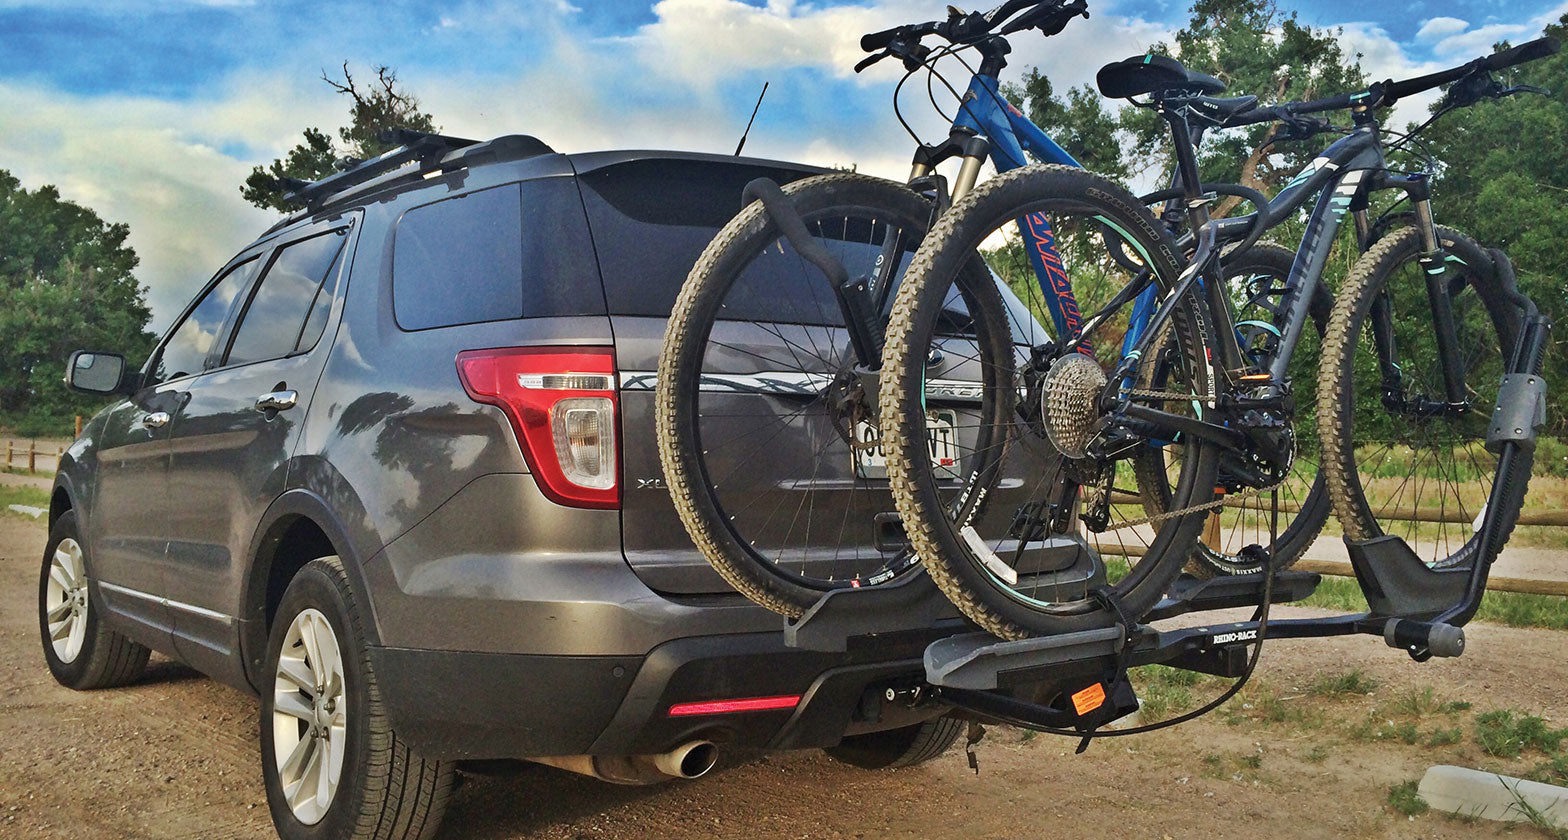 Best hitch bike rack 2017 fabric sleeve for cords